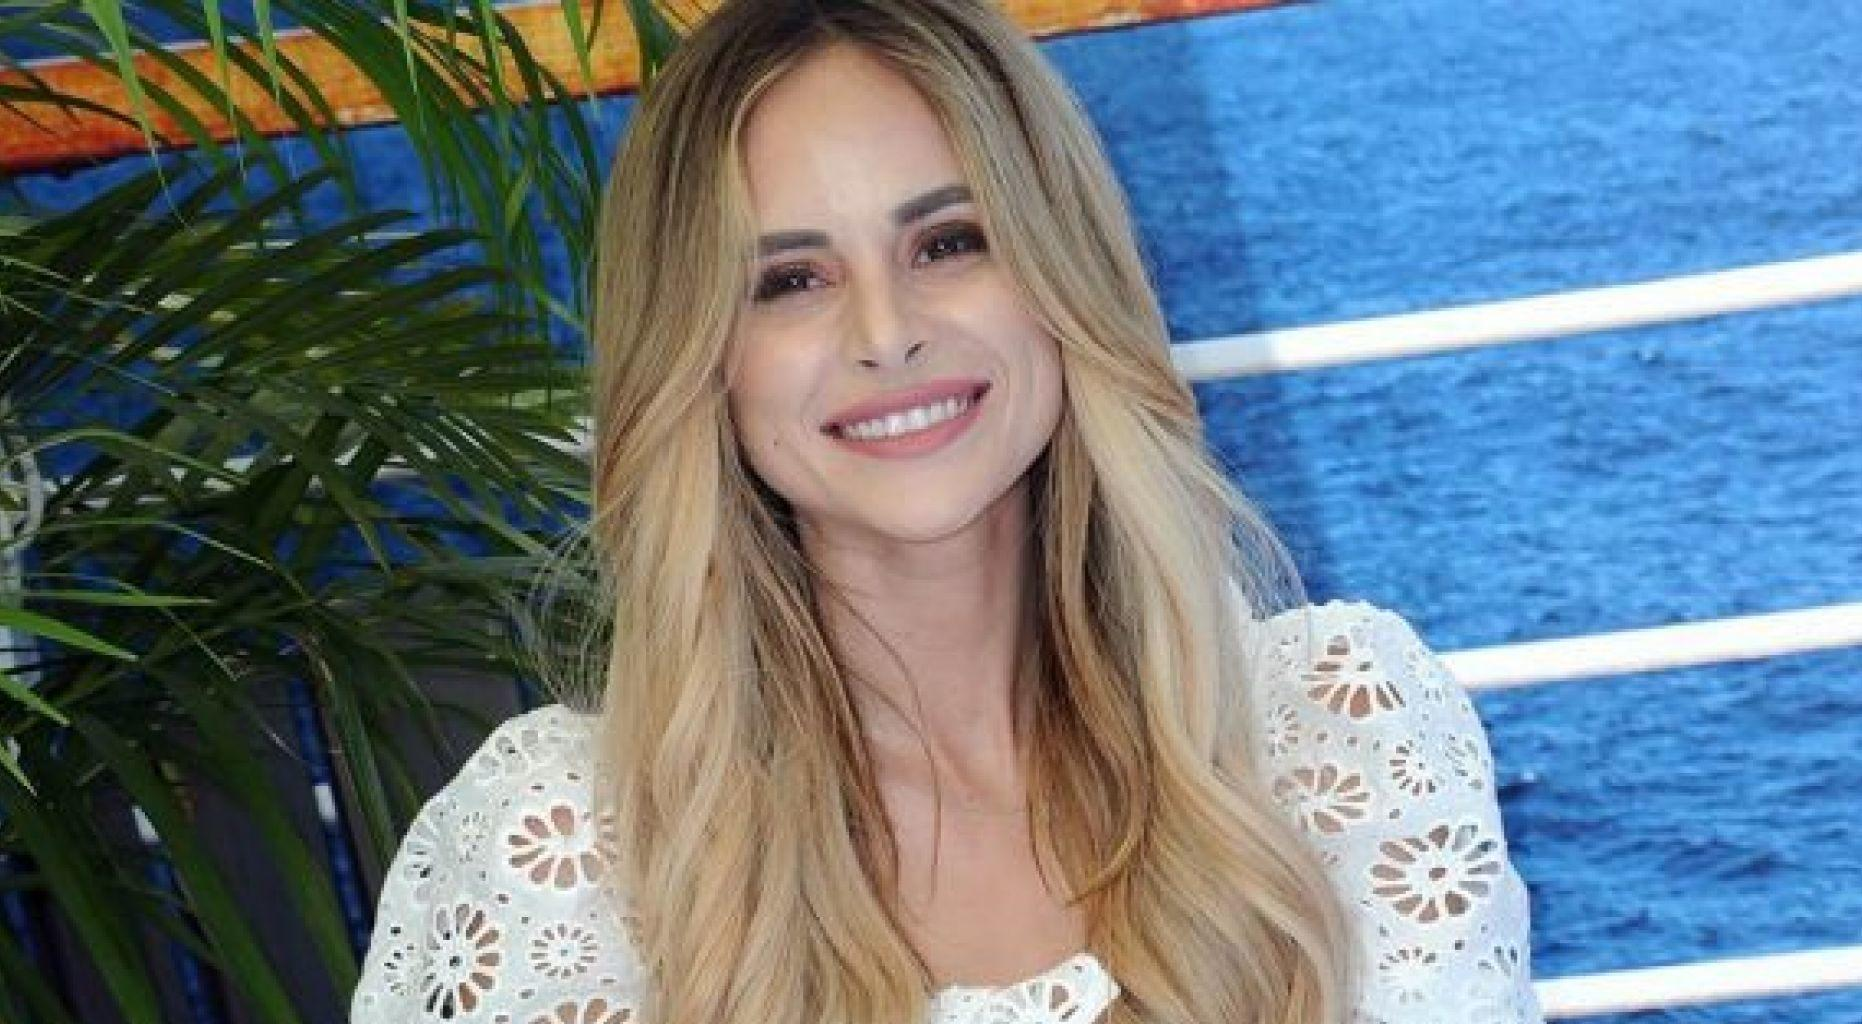 Amanda Stanton Claps Back After Backlash For Letting Her 6-Year-Old Daughter Dye Her Hair